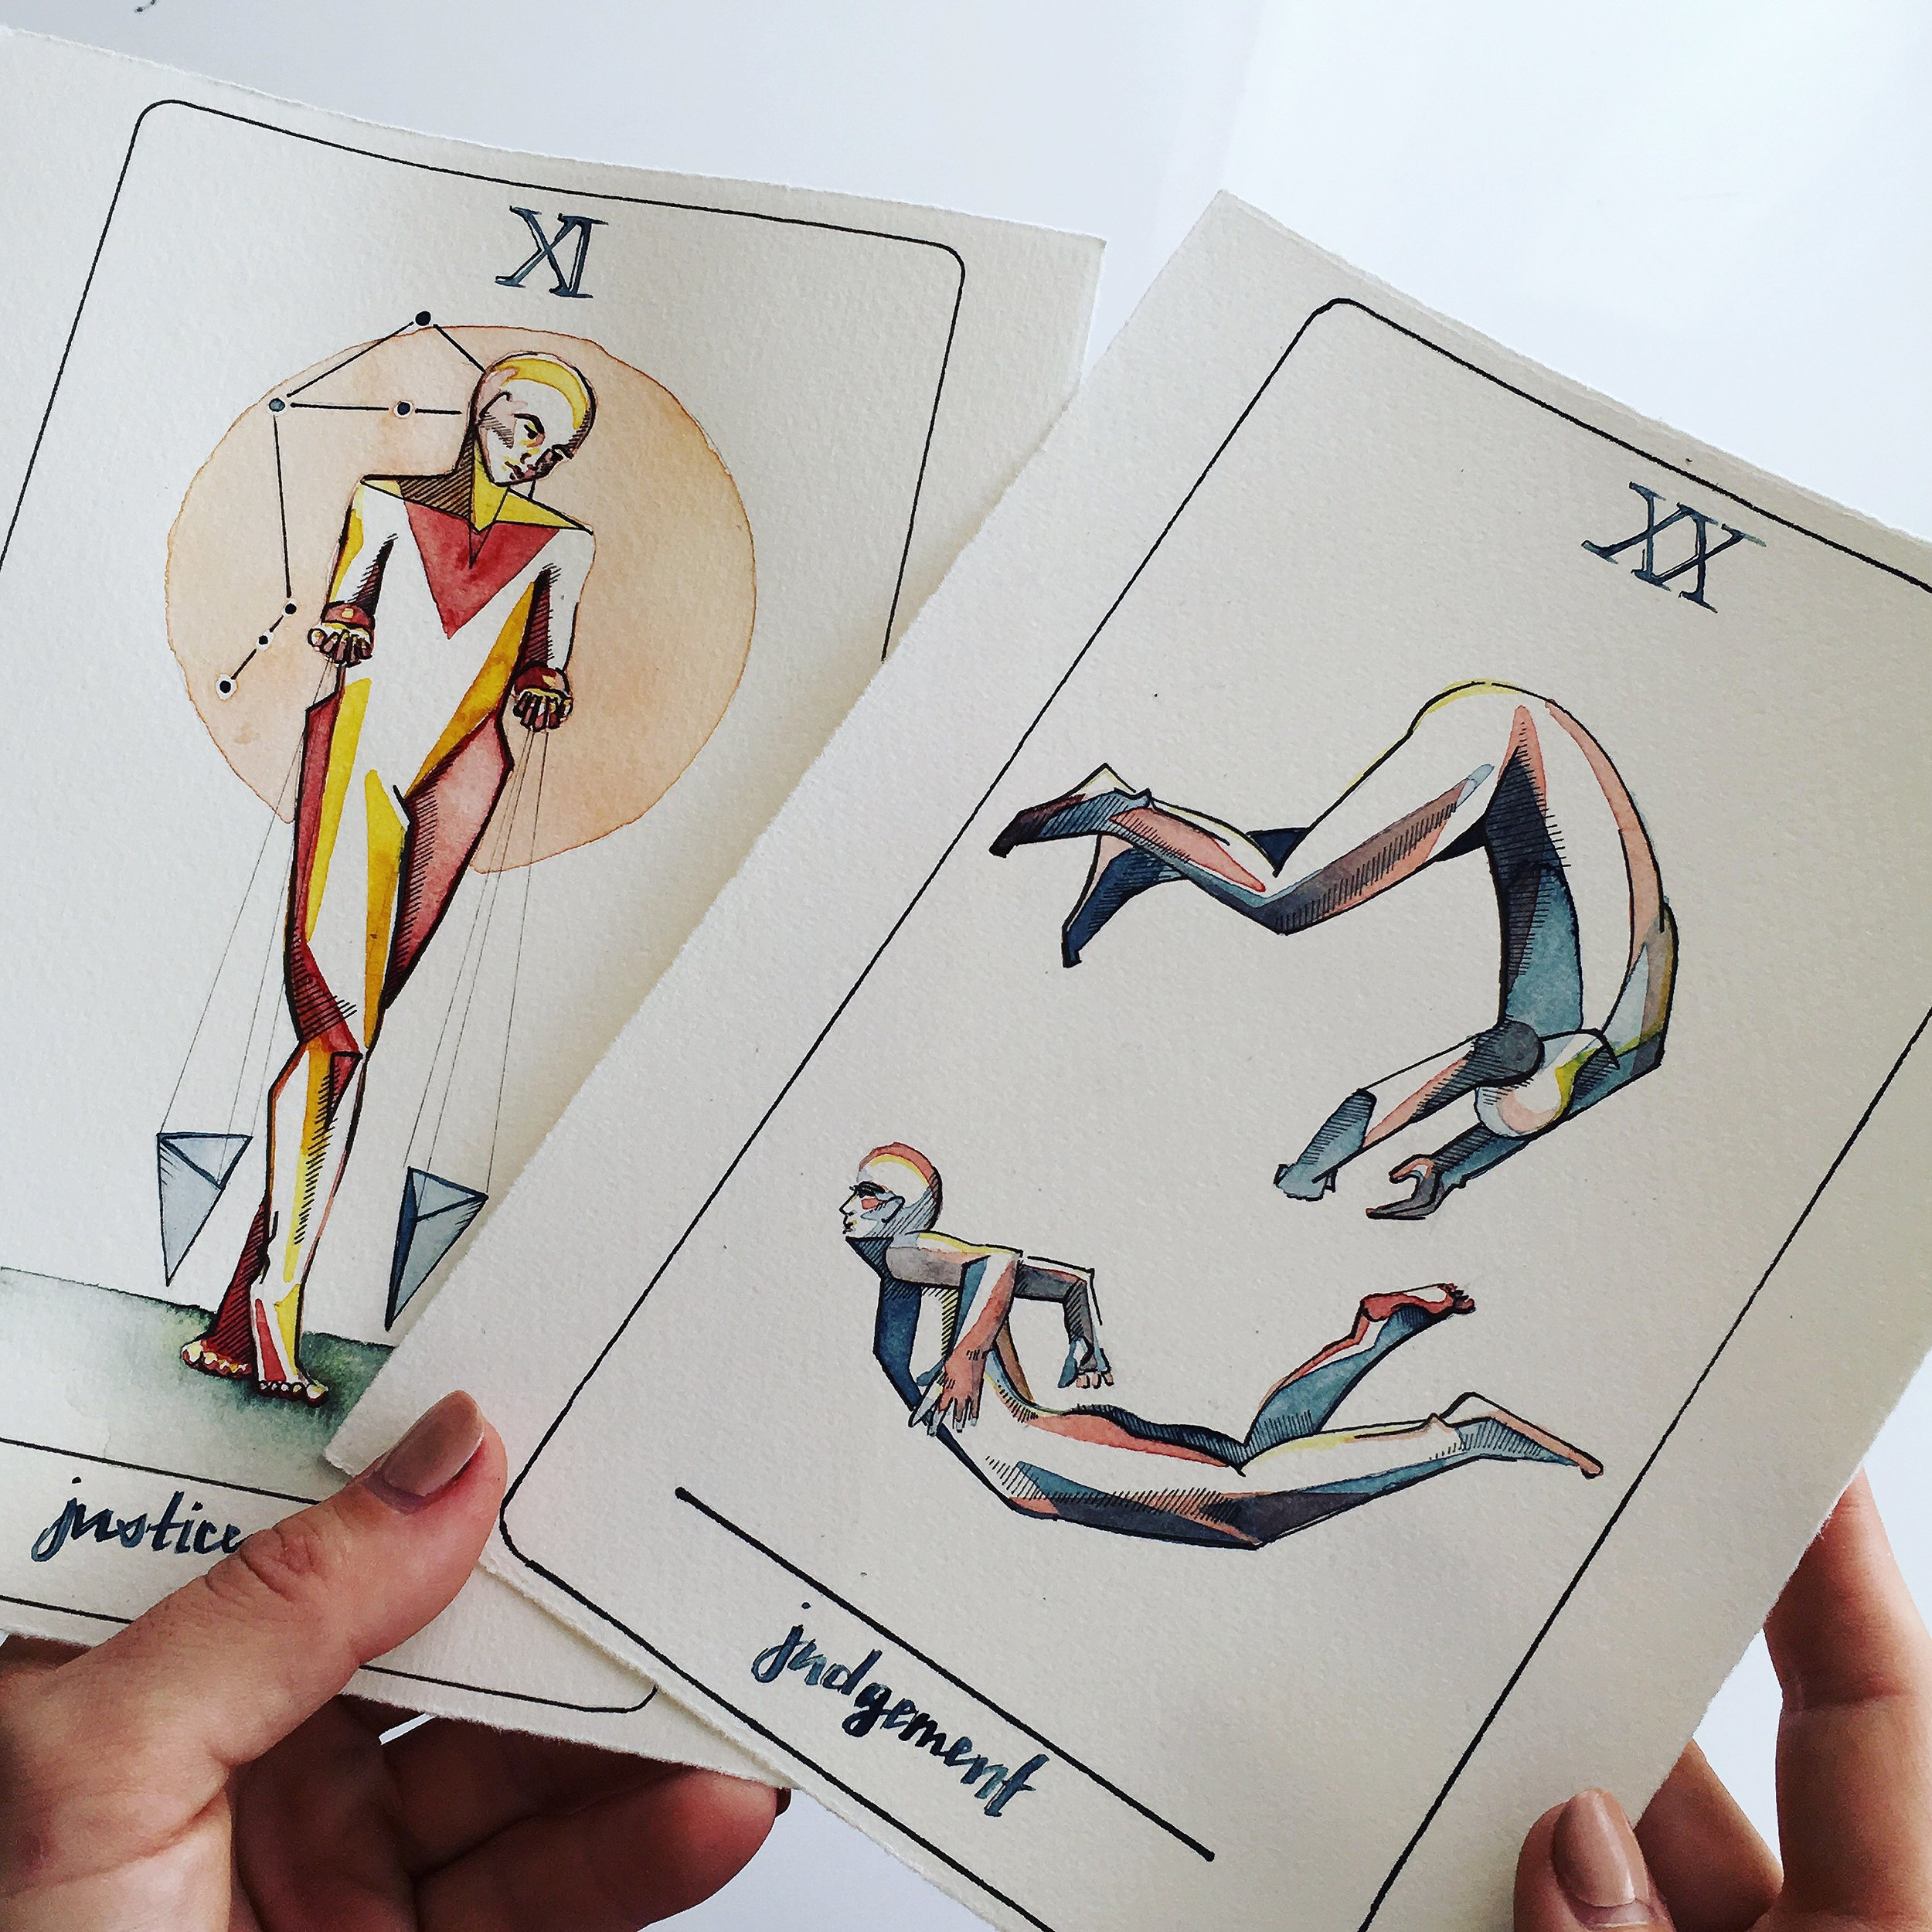 justice, judgement, vindur tarot deck by leah pantea